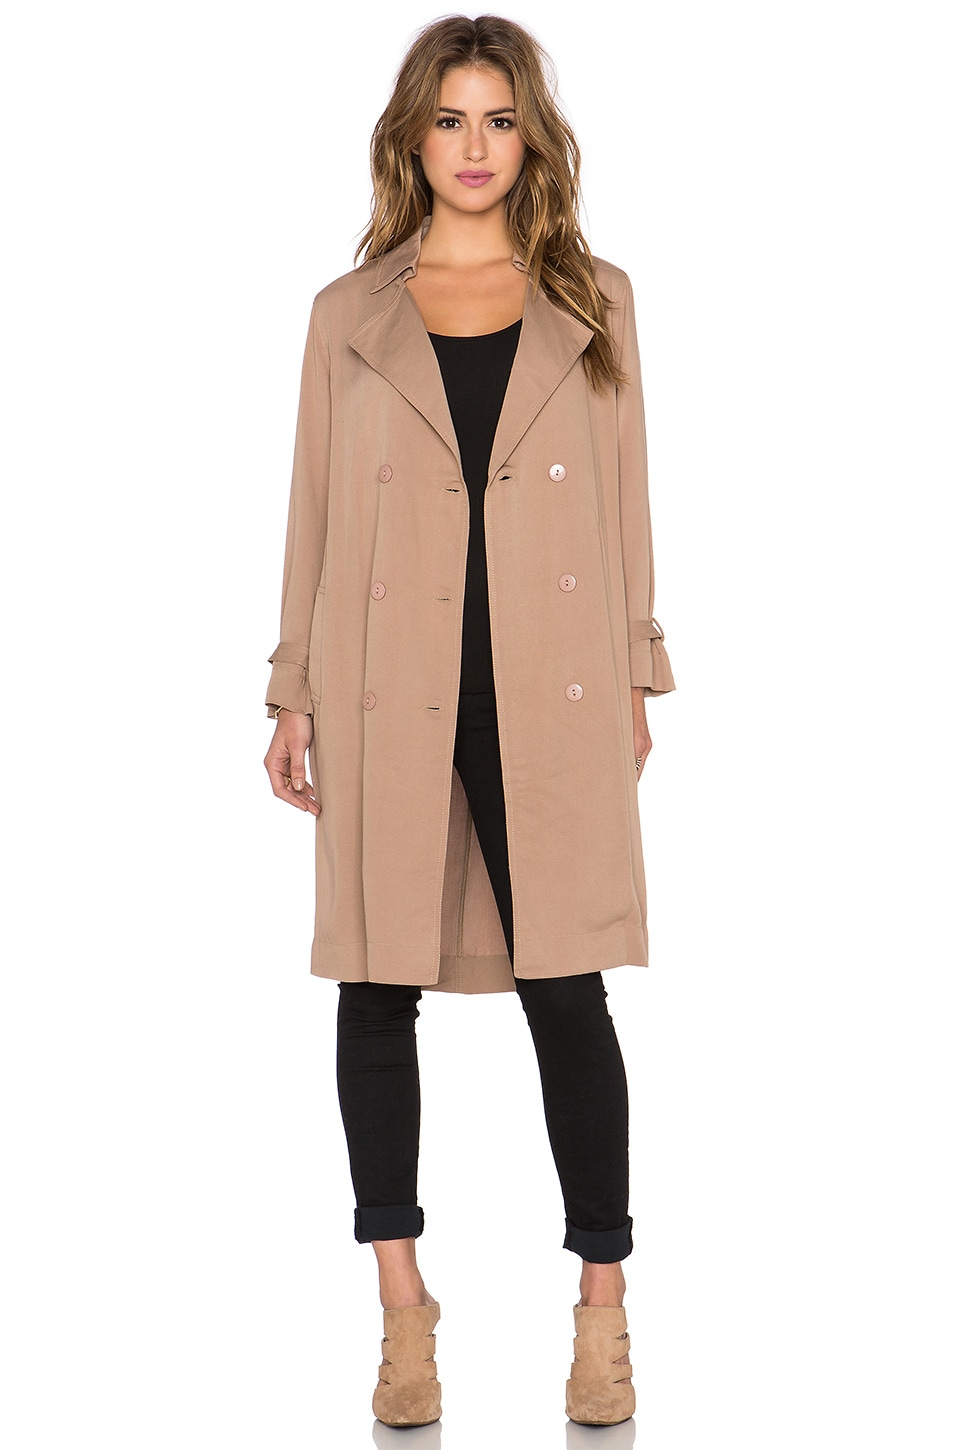 Lucca Couture Trench Coat in Taupe